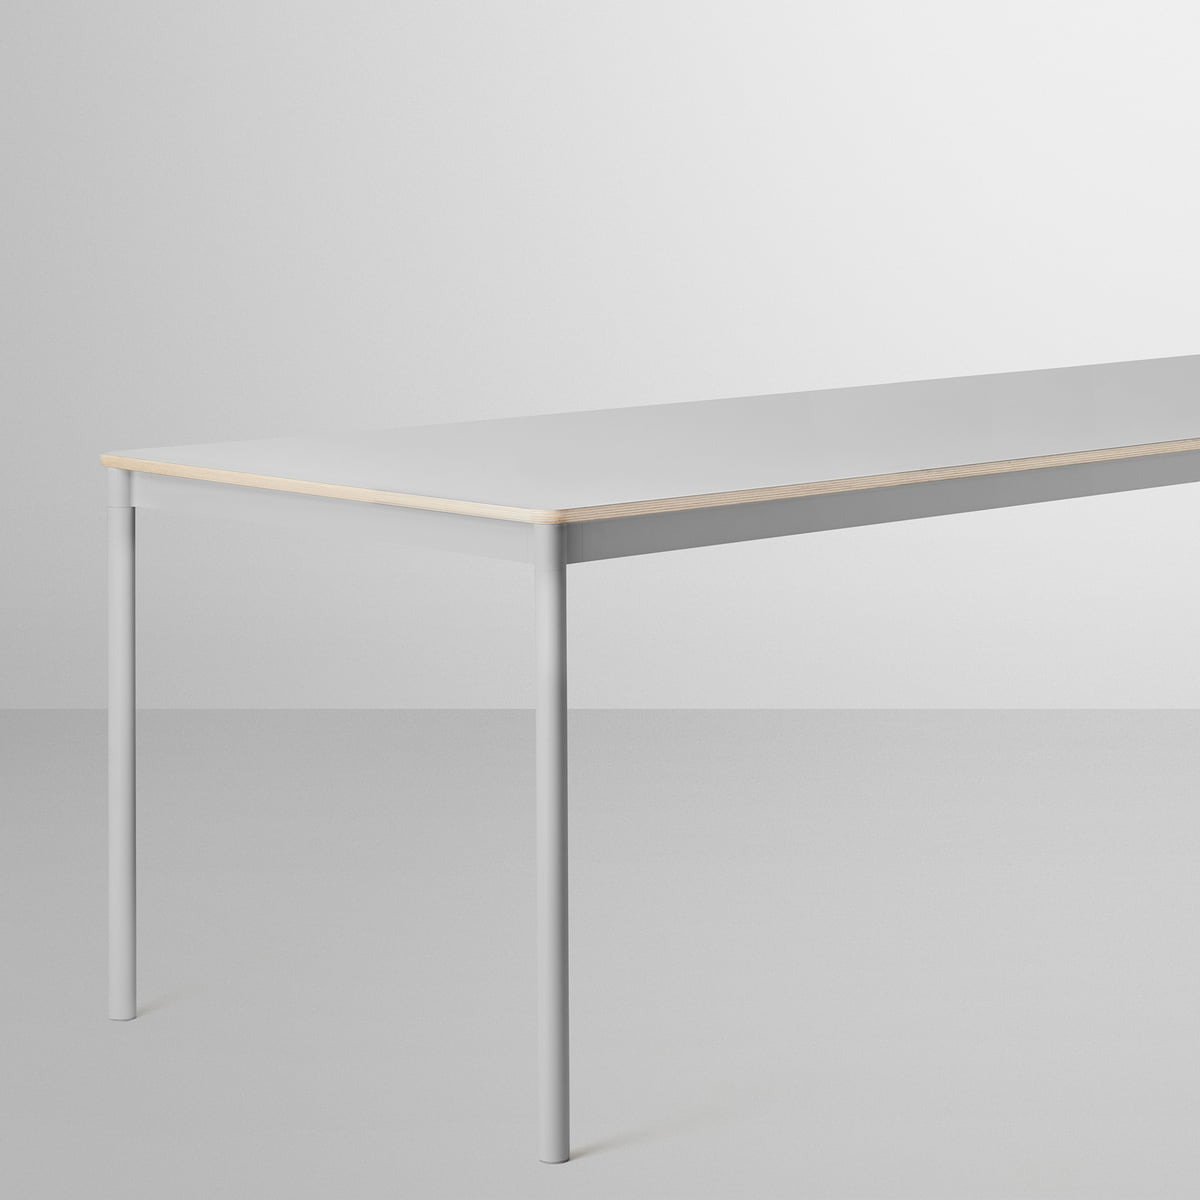 The Base Table in grey by Muuto